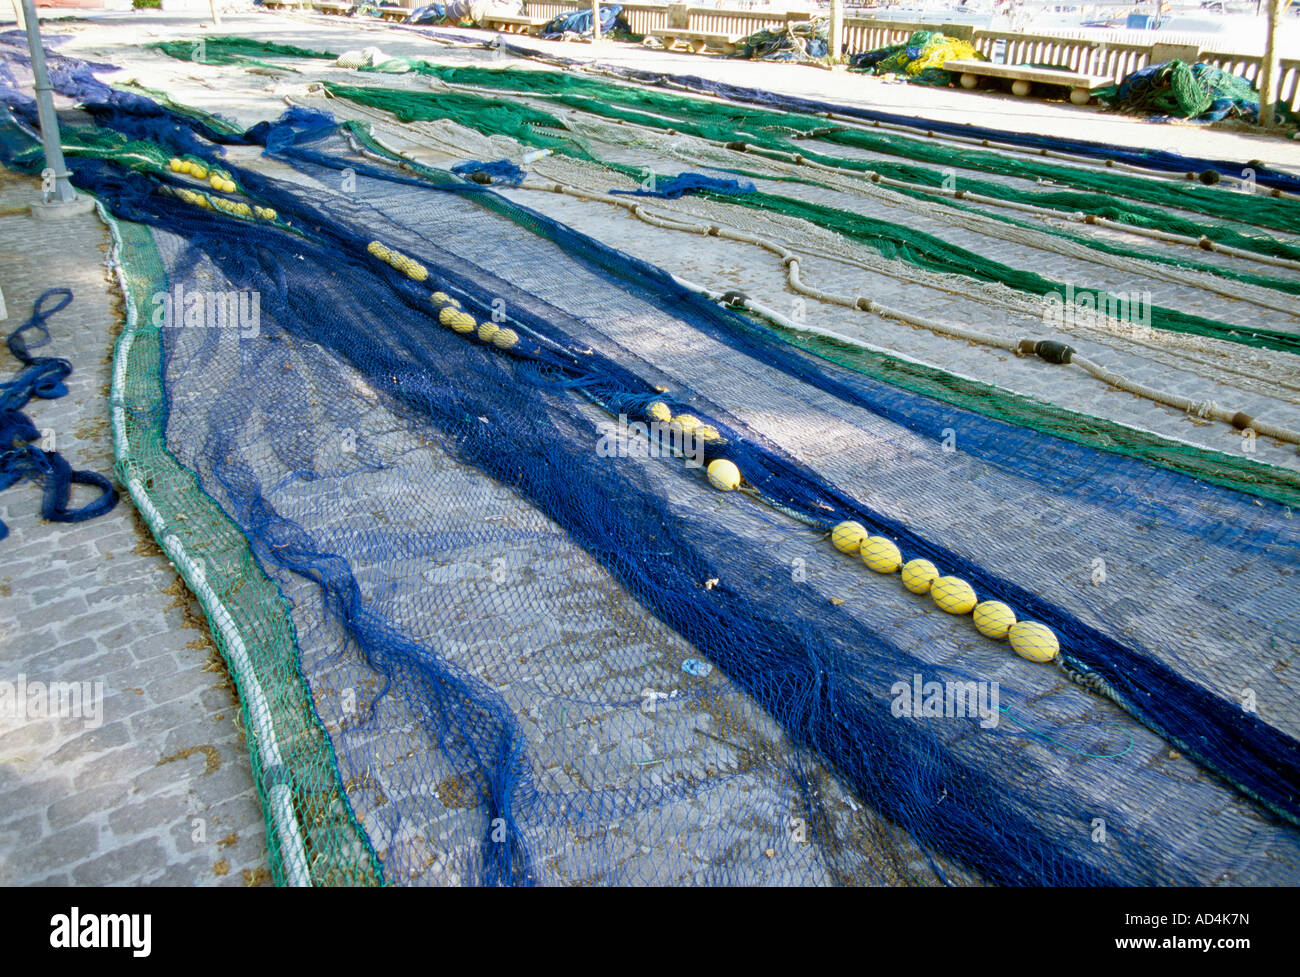 Fishing nets laid out - Stock Image